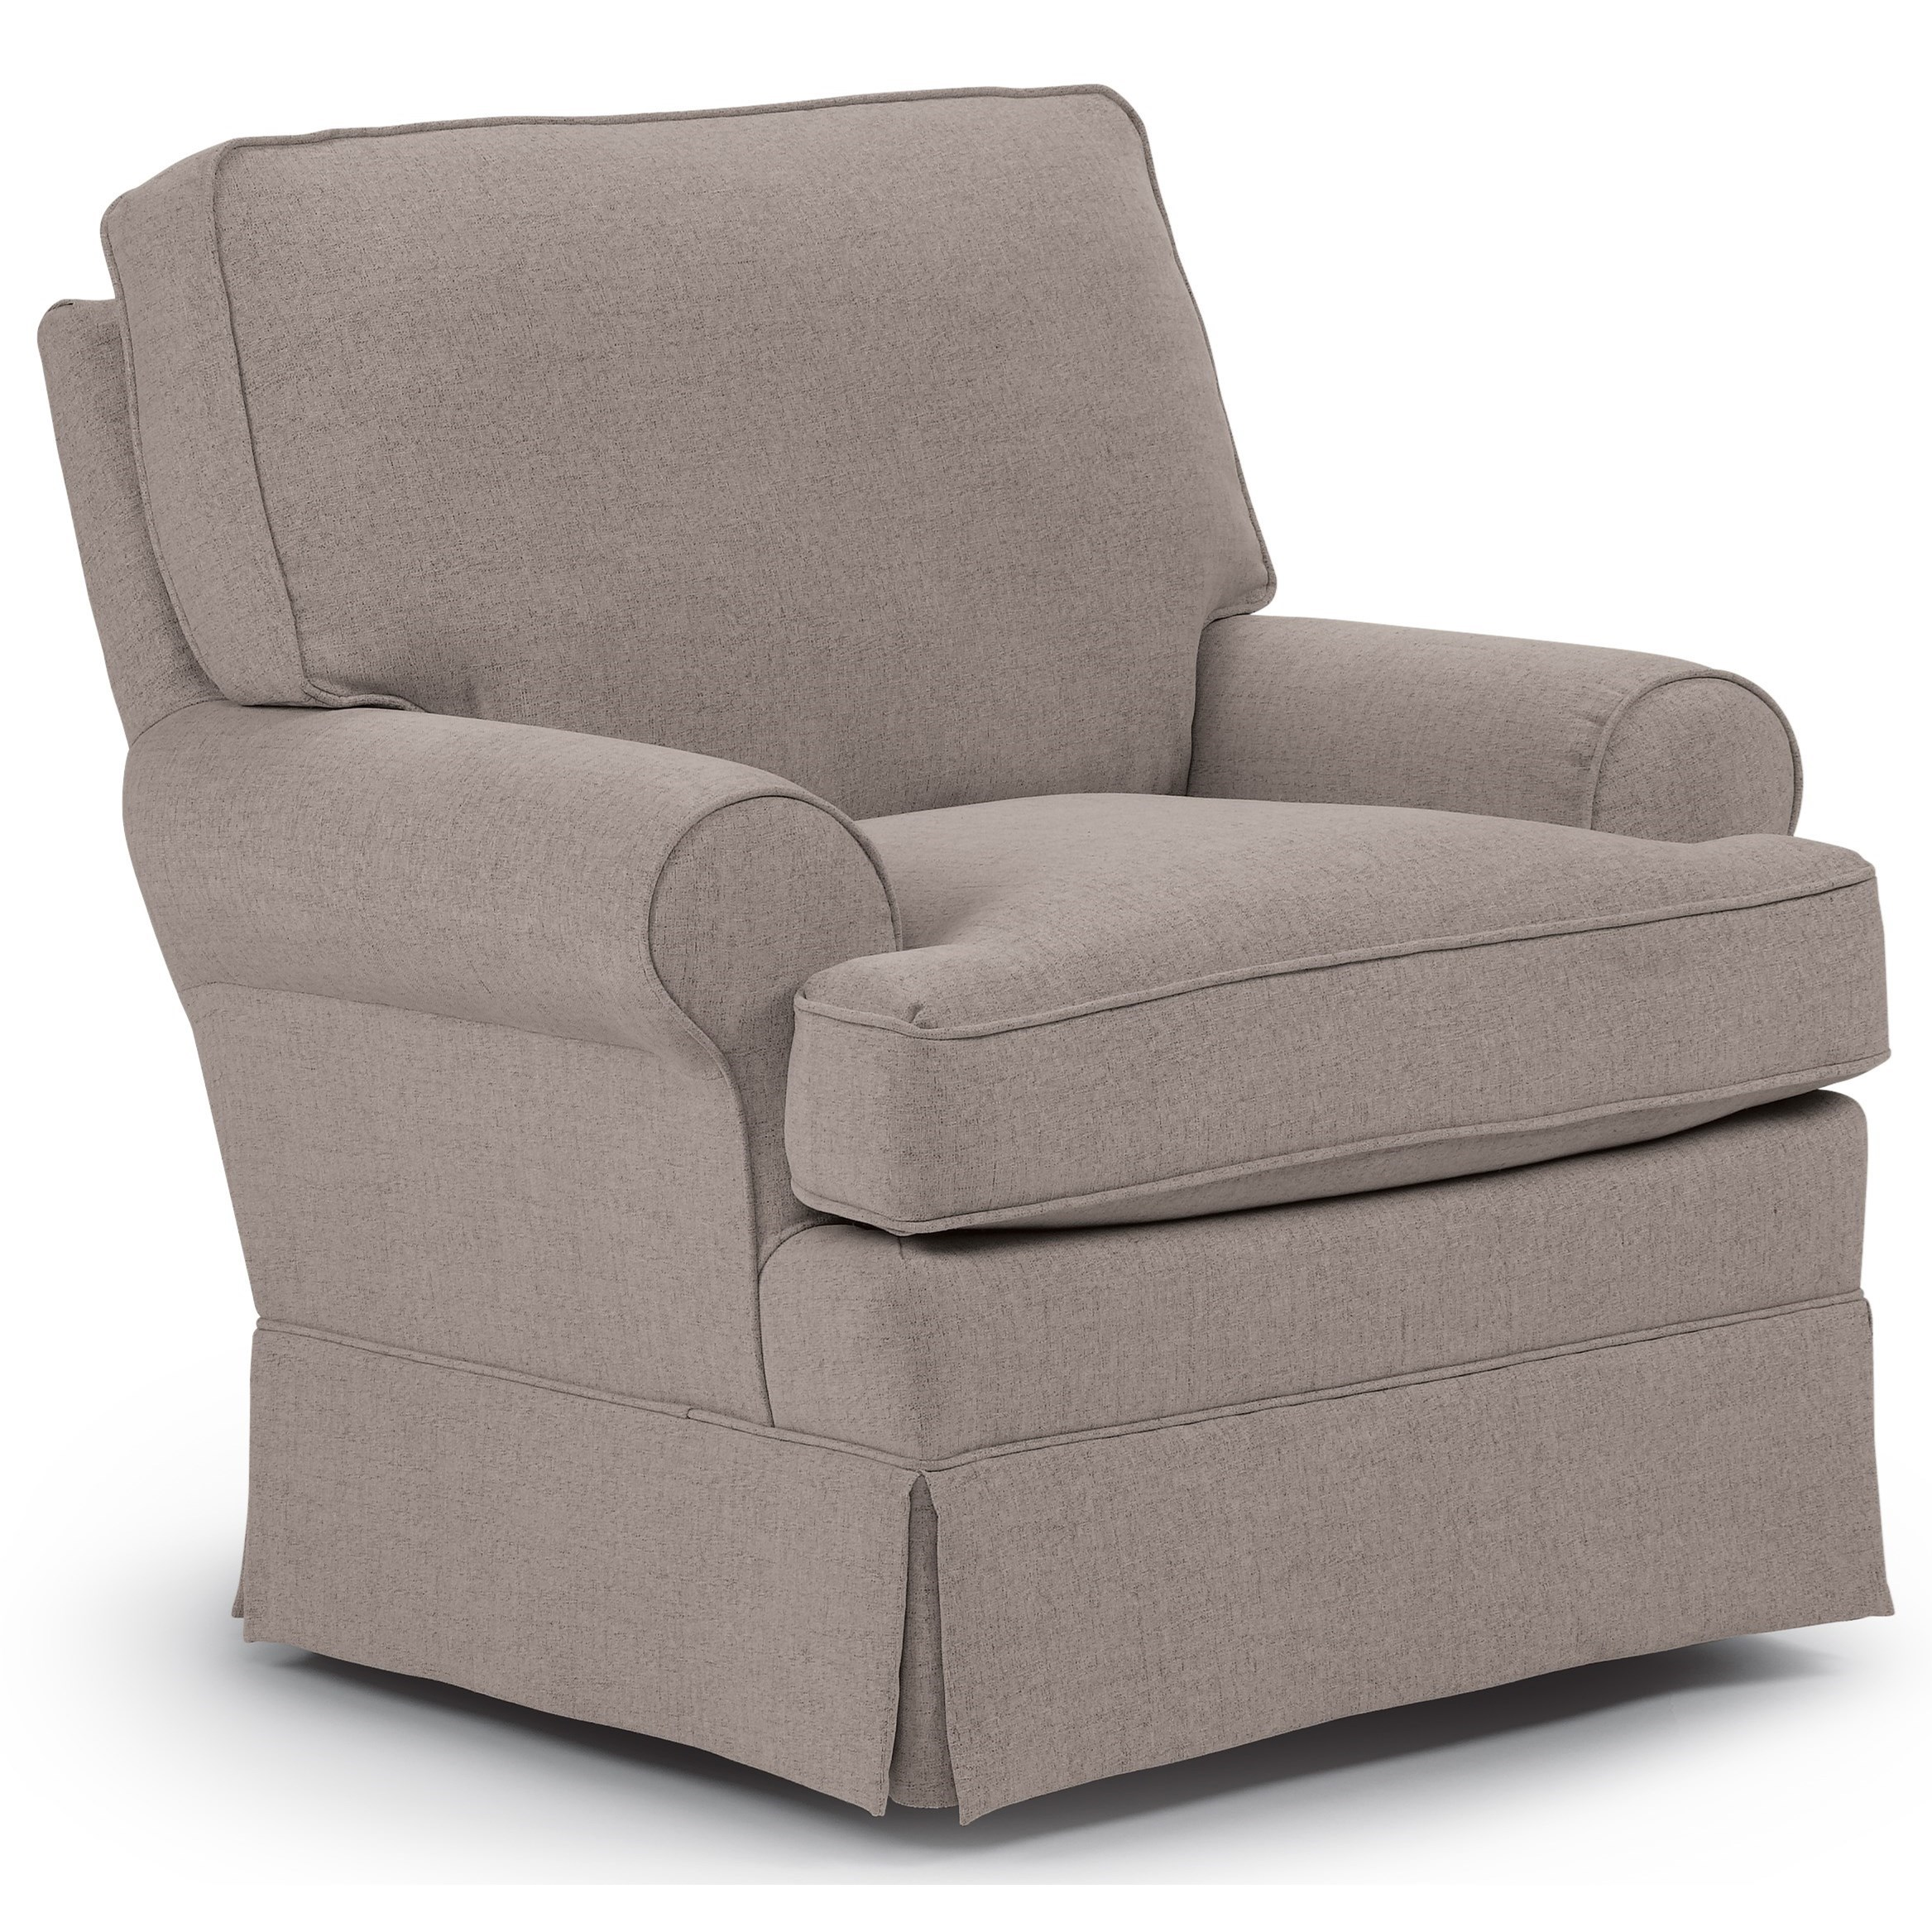 Swivel Glider Chair with Welt Cord Trim